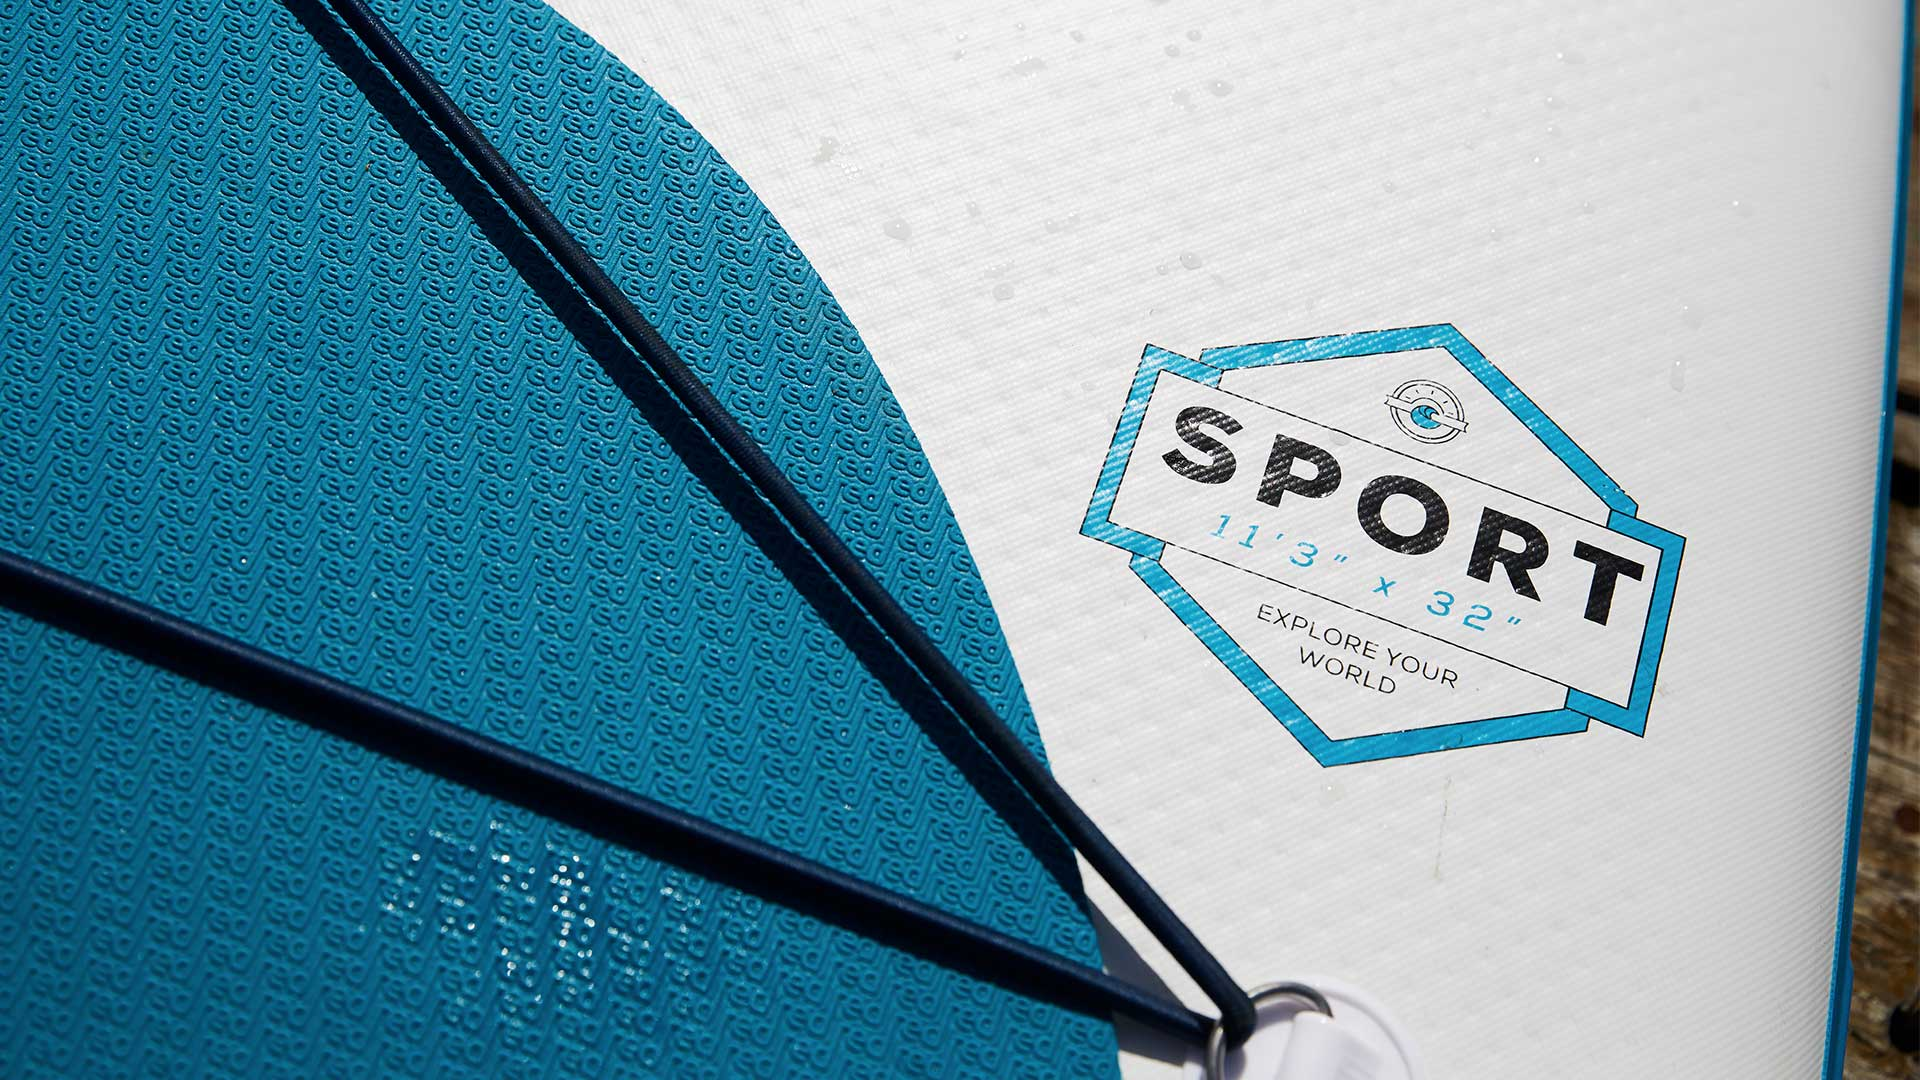 redpaddleco-113-sport-inflatable-paddle-board-desktop-gallery-cargo